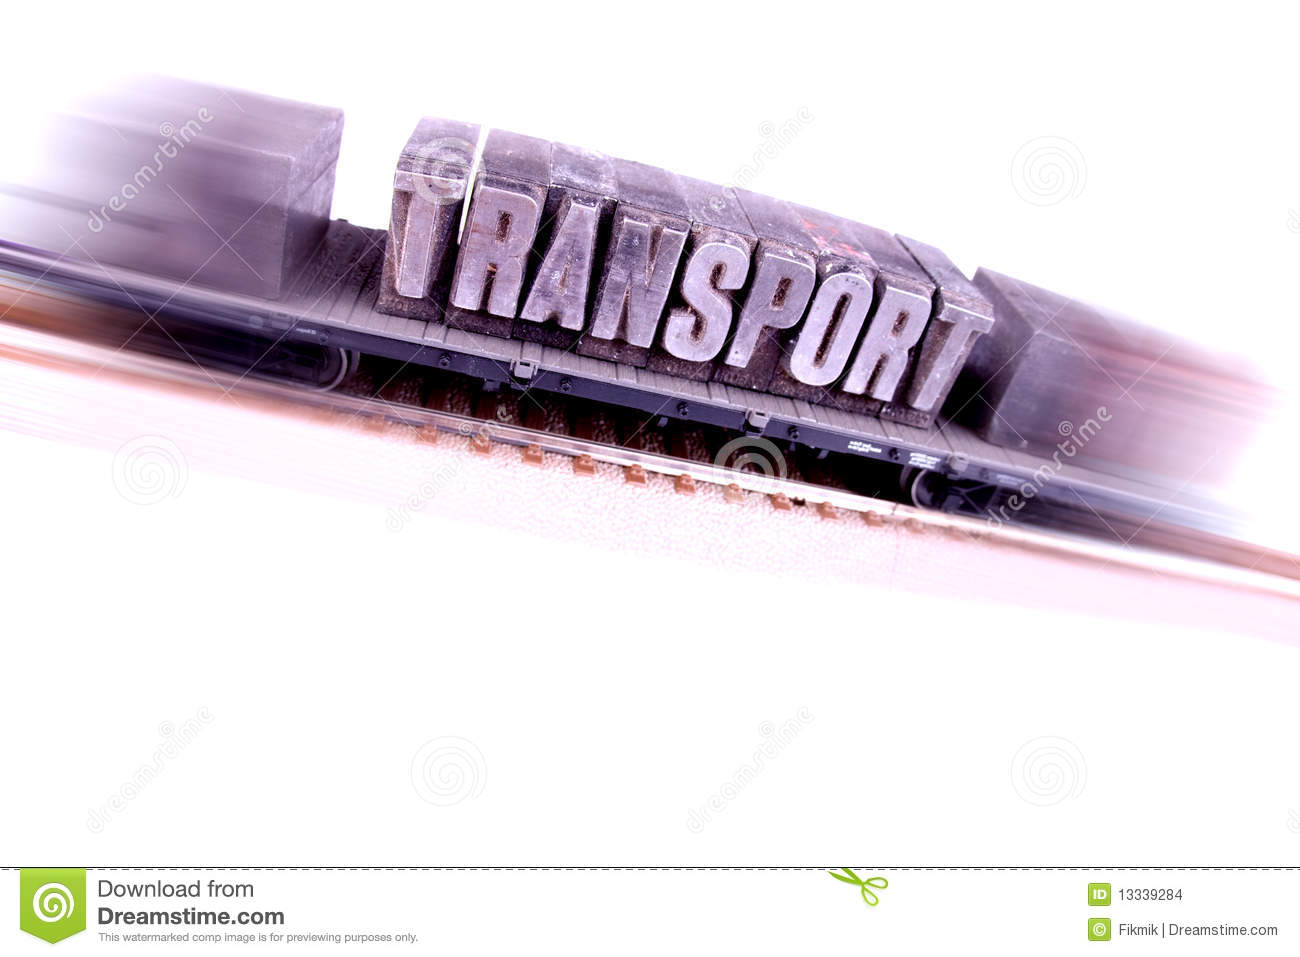 f7347c7284a9 Fast Transport on Railway stock photo. Image of childhood - 13339284